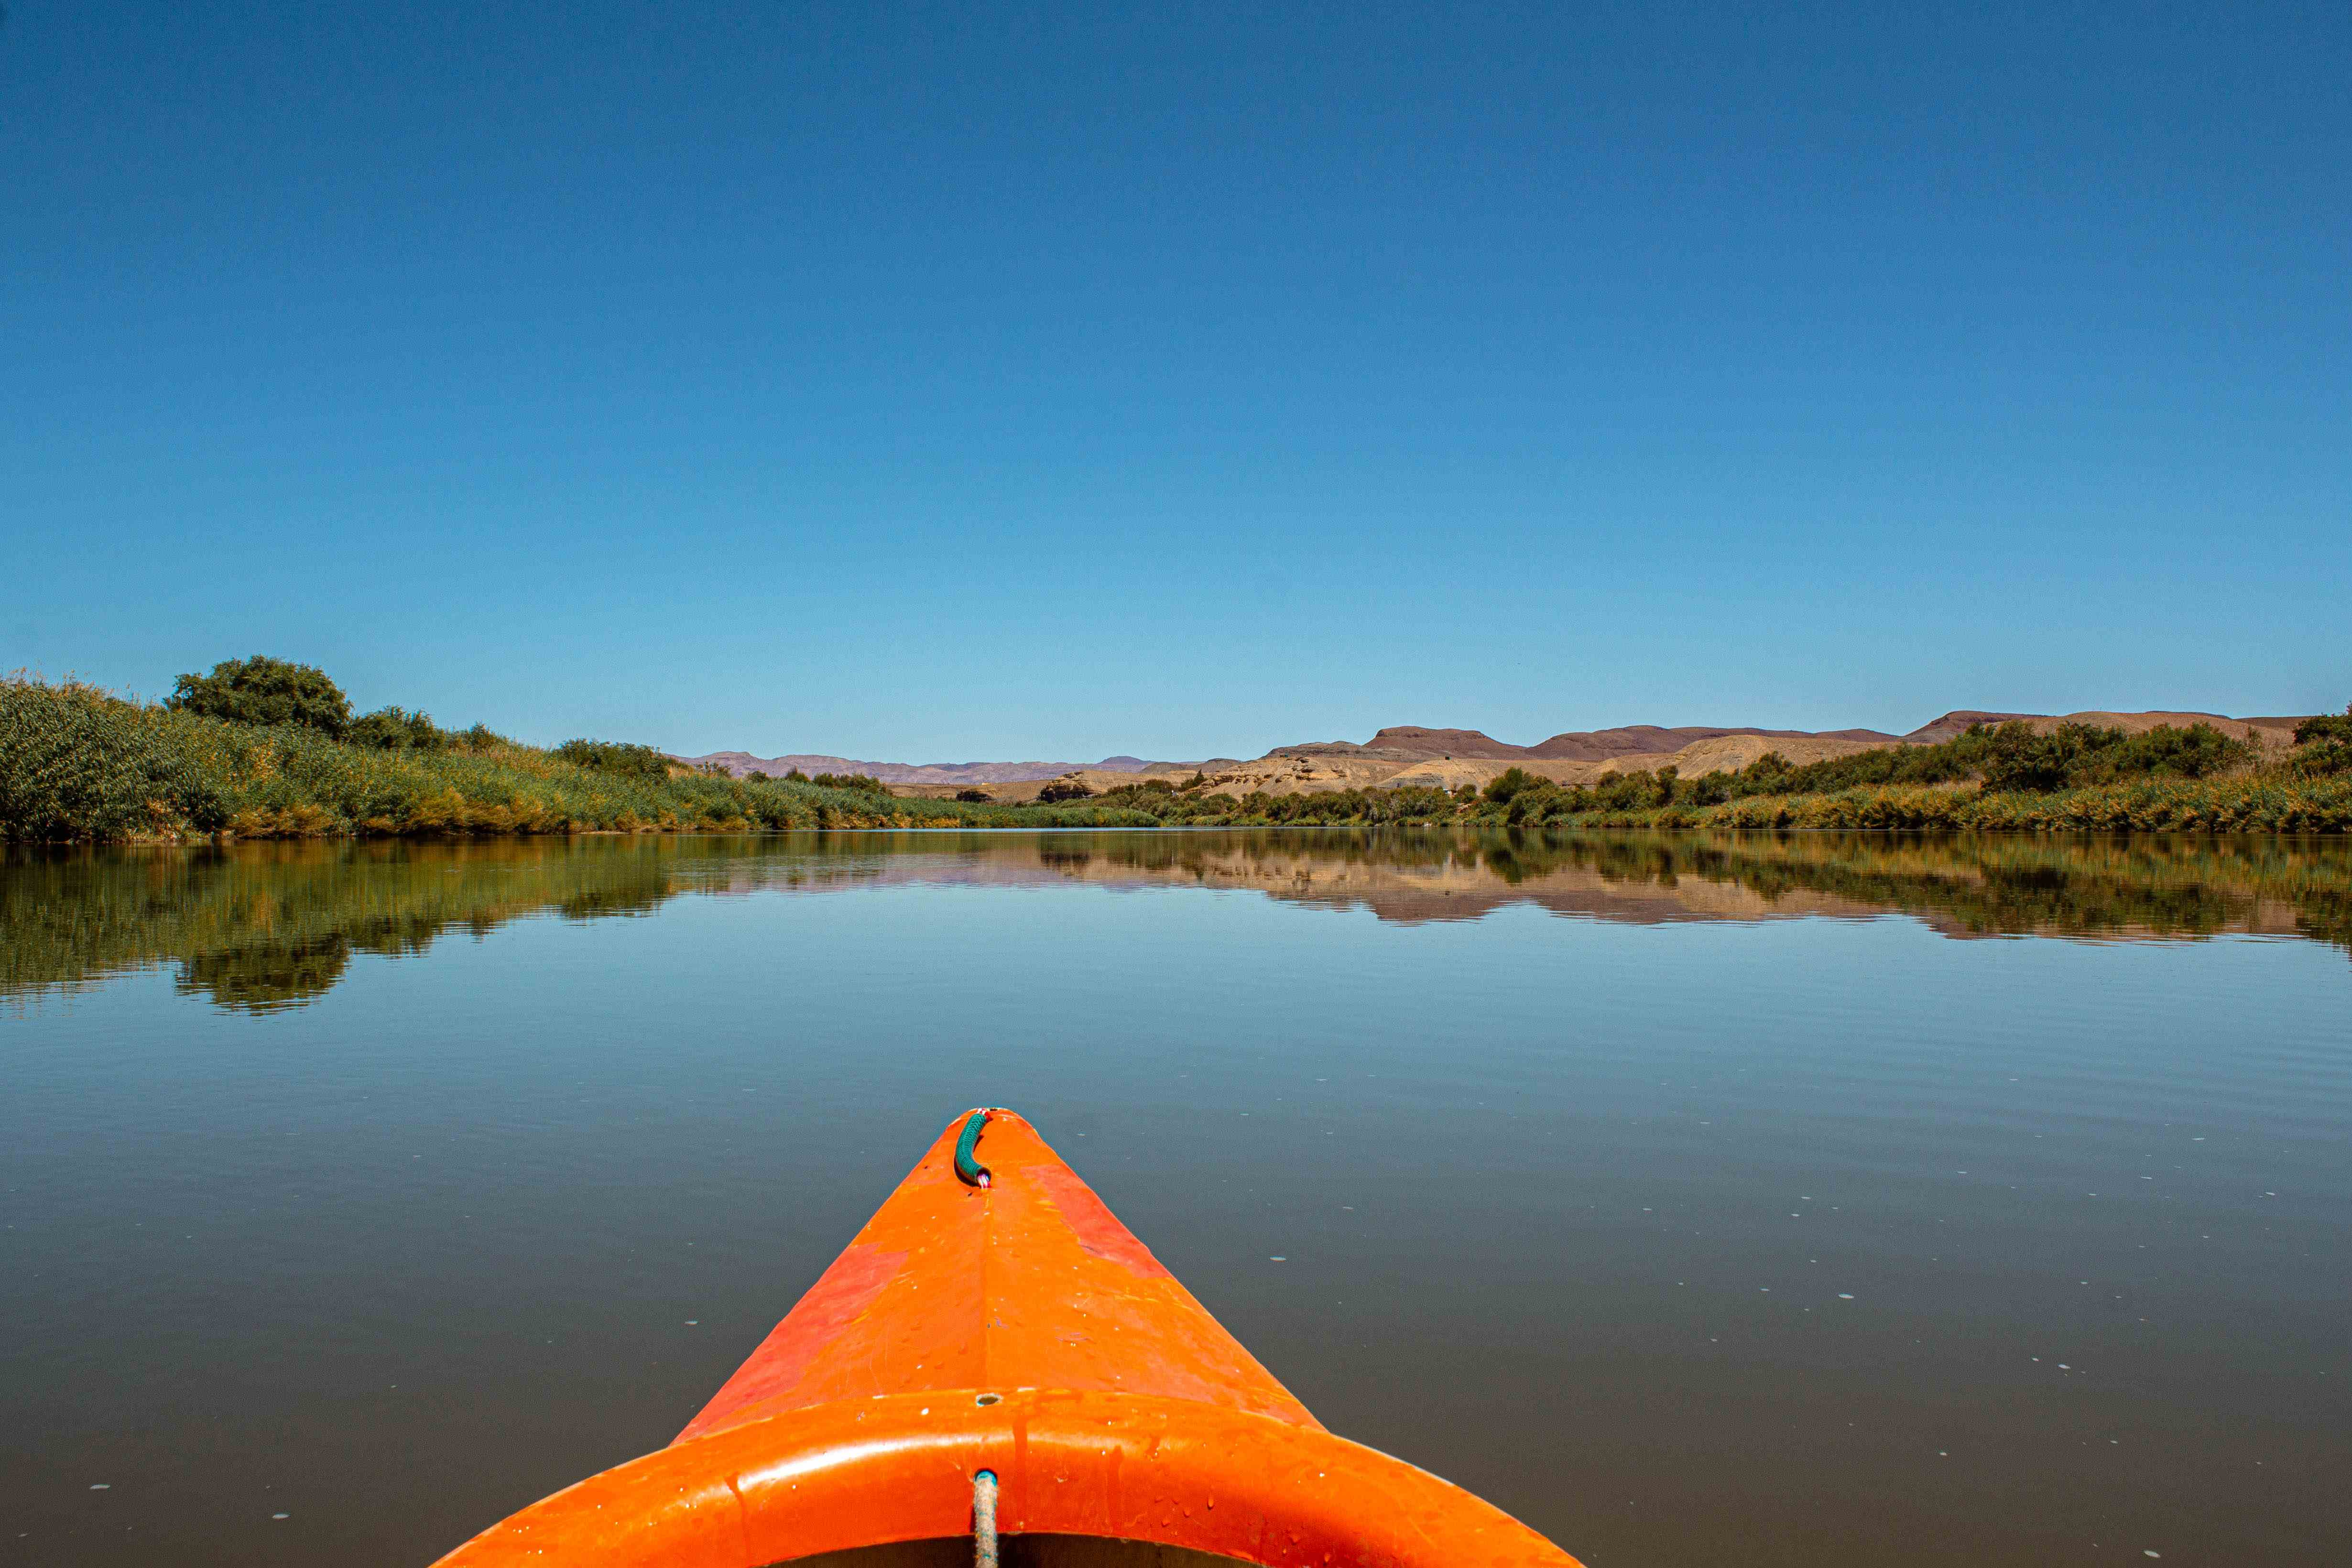 orange canoe in the middle of the orange river in namibia. mountains with reflections in the distance.